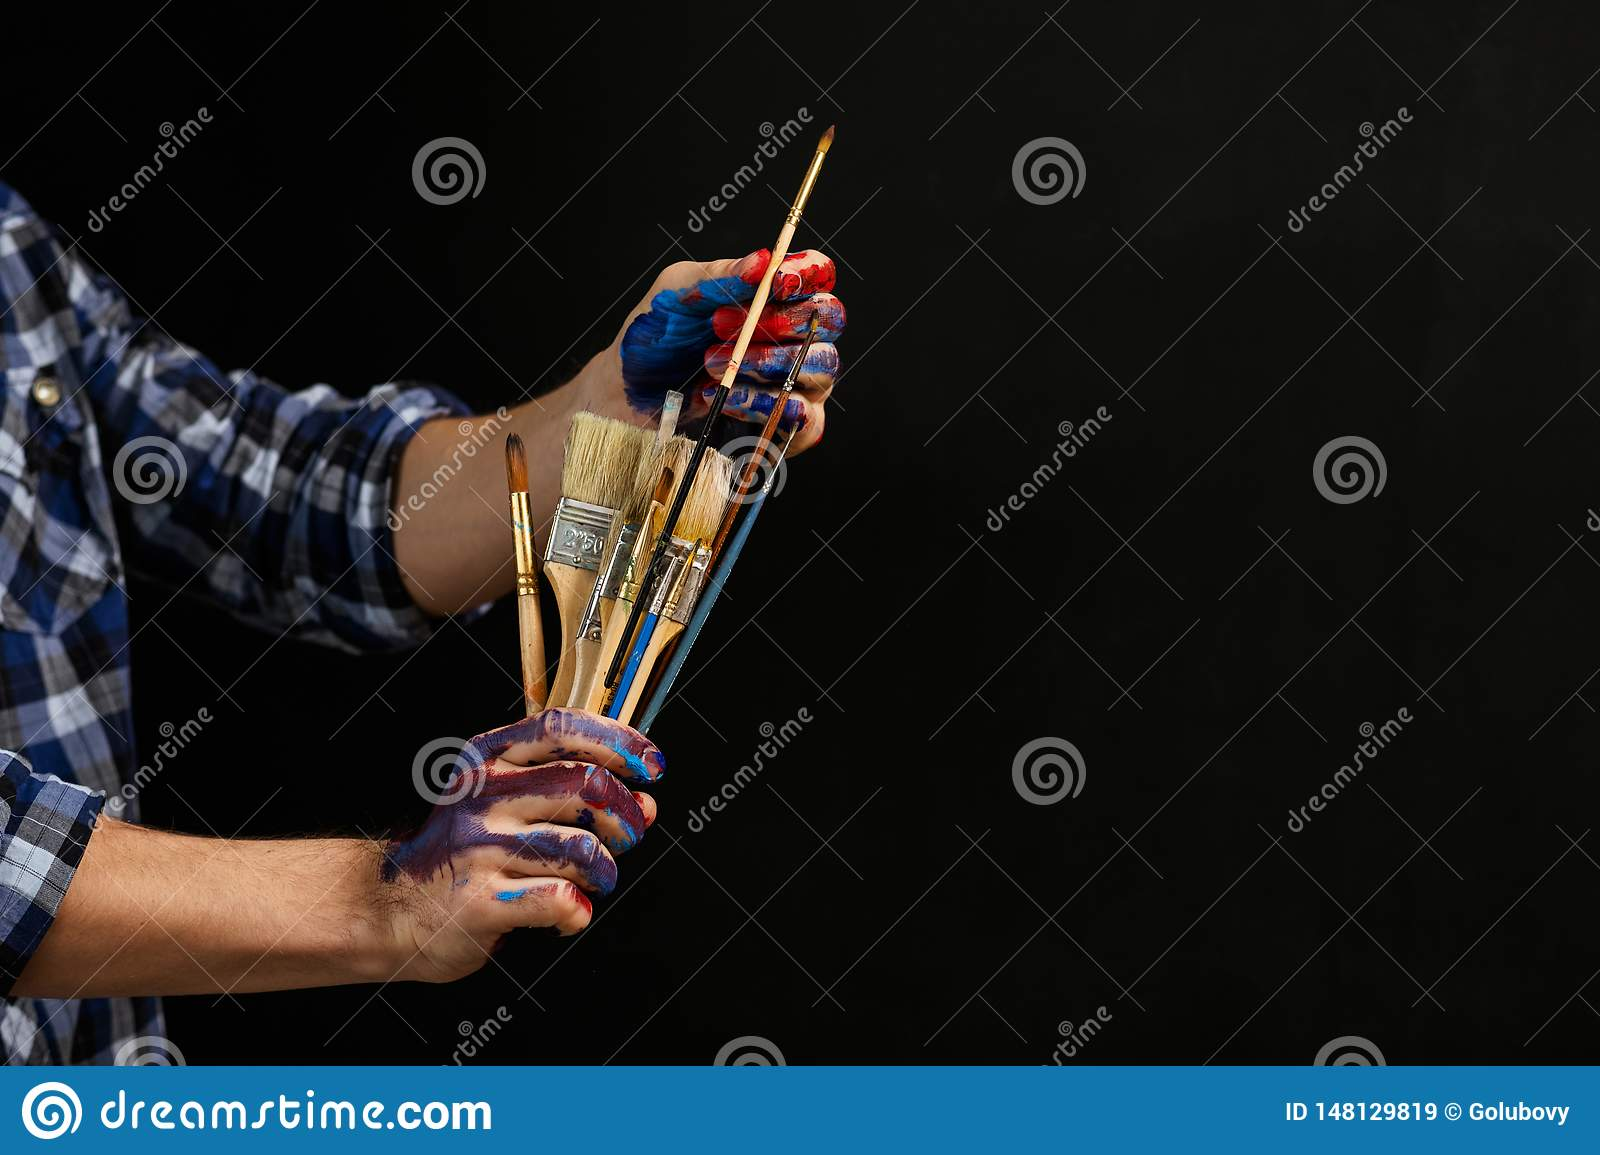 Artist tools paintbrushes man hands art lifestyle